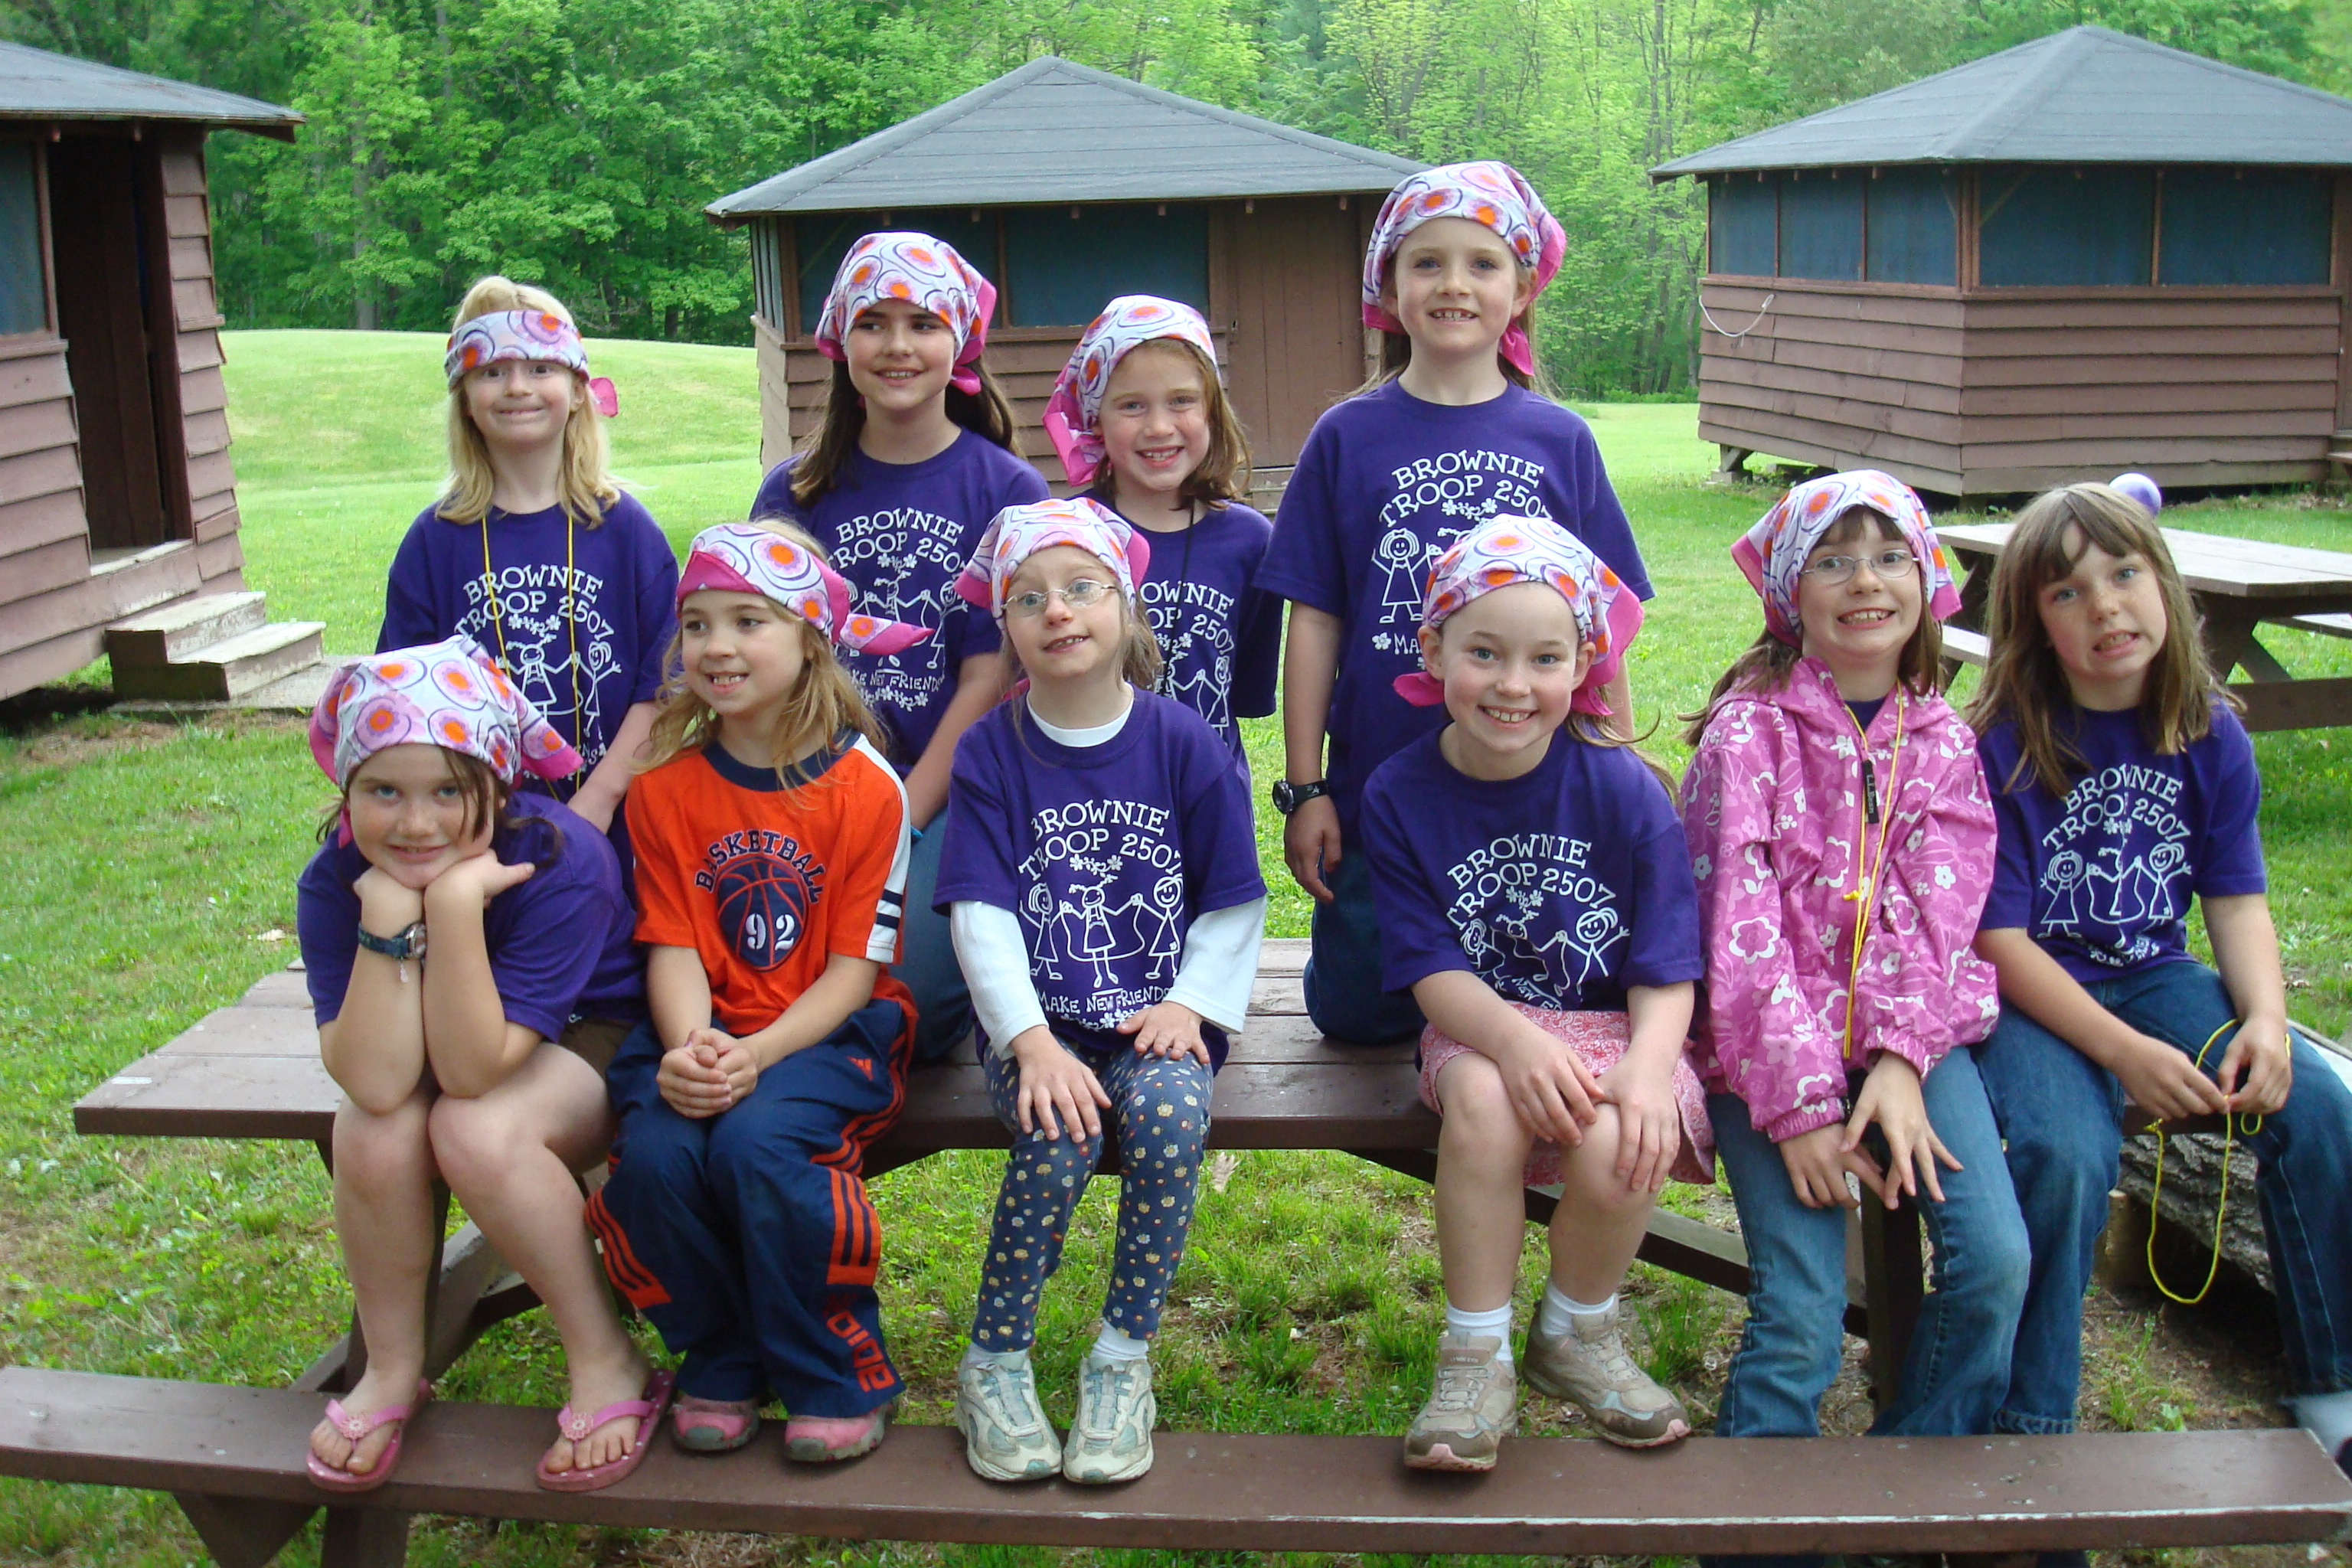 Custom T-Shirts for Girl Scouts Camping Trip